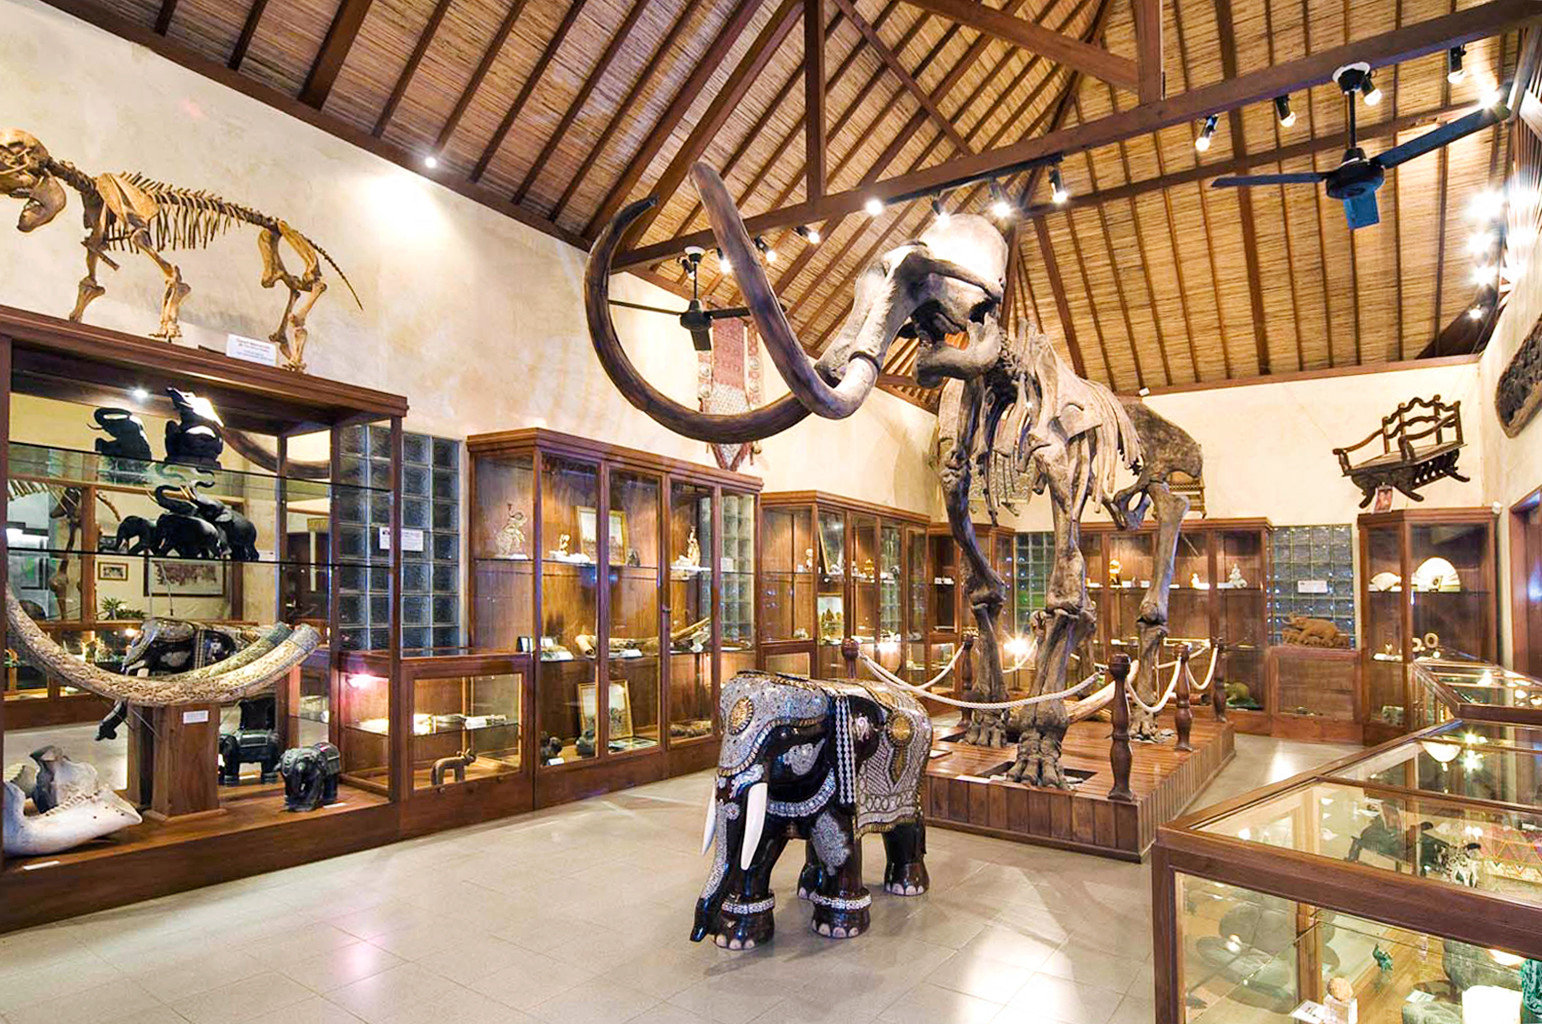 Adventure Lobby Safari building museum tourist attraction retail shopping mall